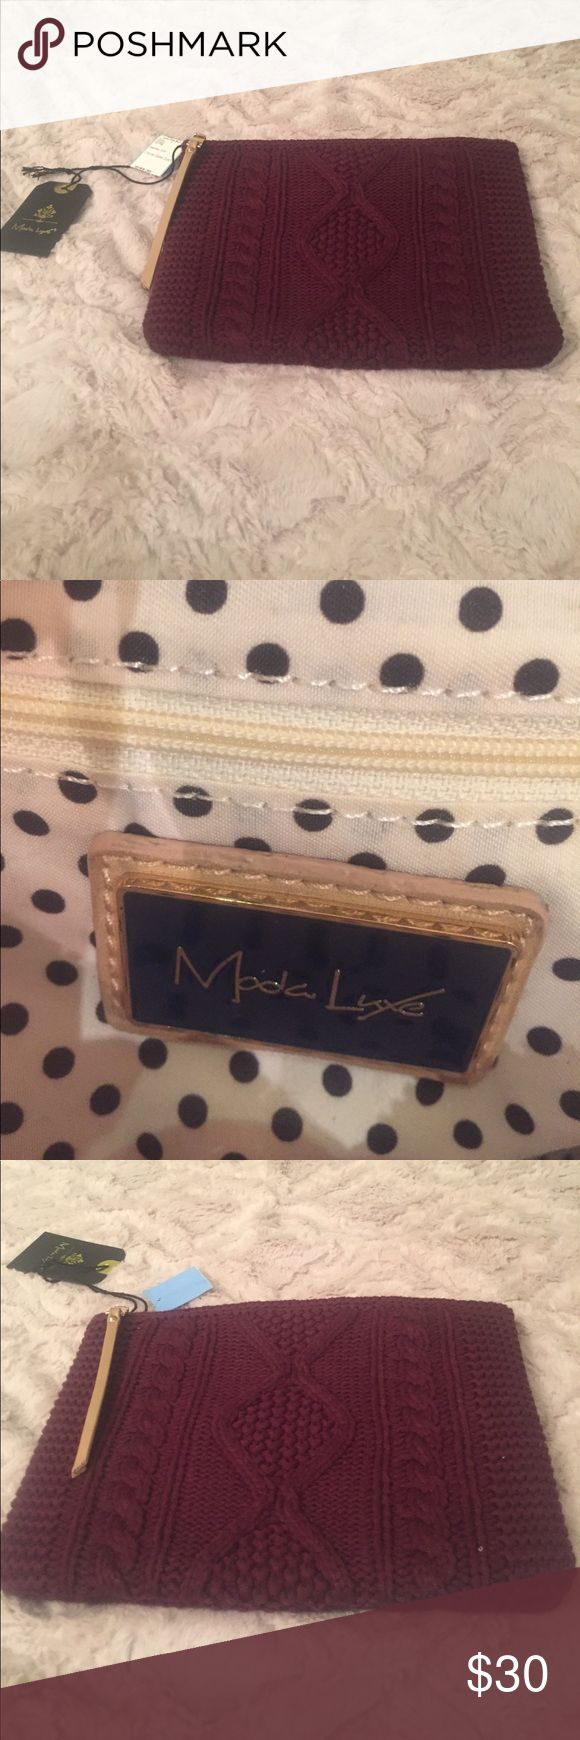 NWT Wine color, Fall like cable knit clutch bag Moda Luxe clutch has a Zipper on top with  a nude colored strap adding more pizzazz, polka dot interior with two pockets and a zipper Bags Clutches & Wristlets